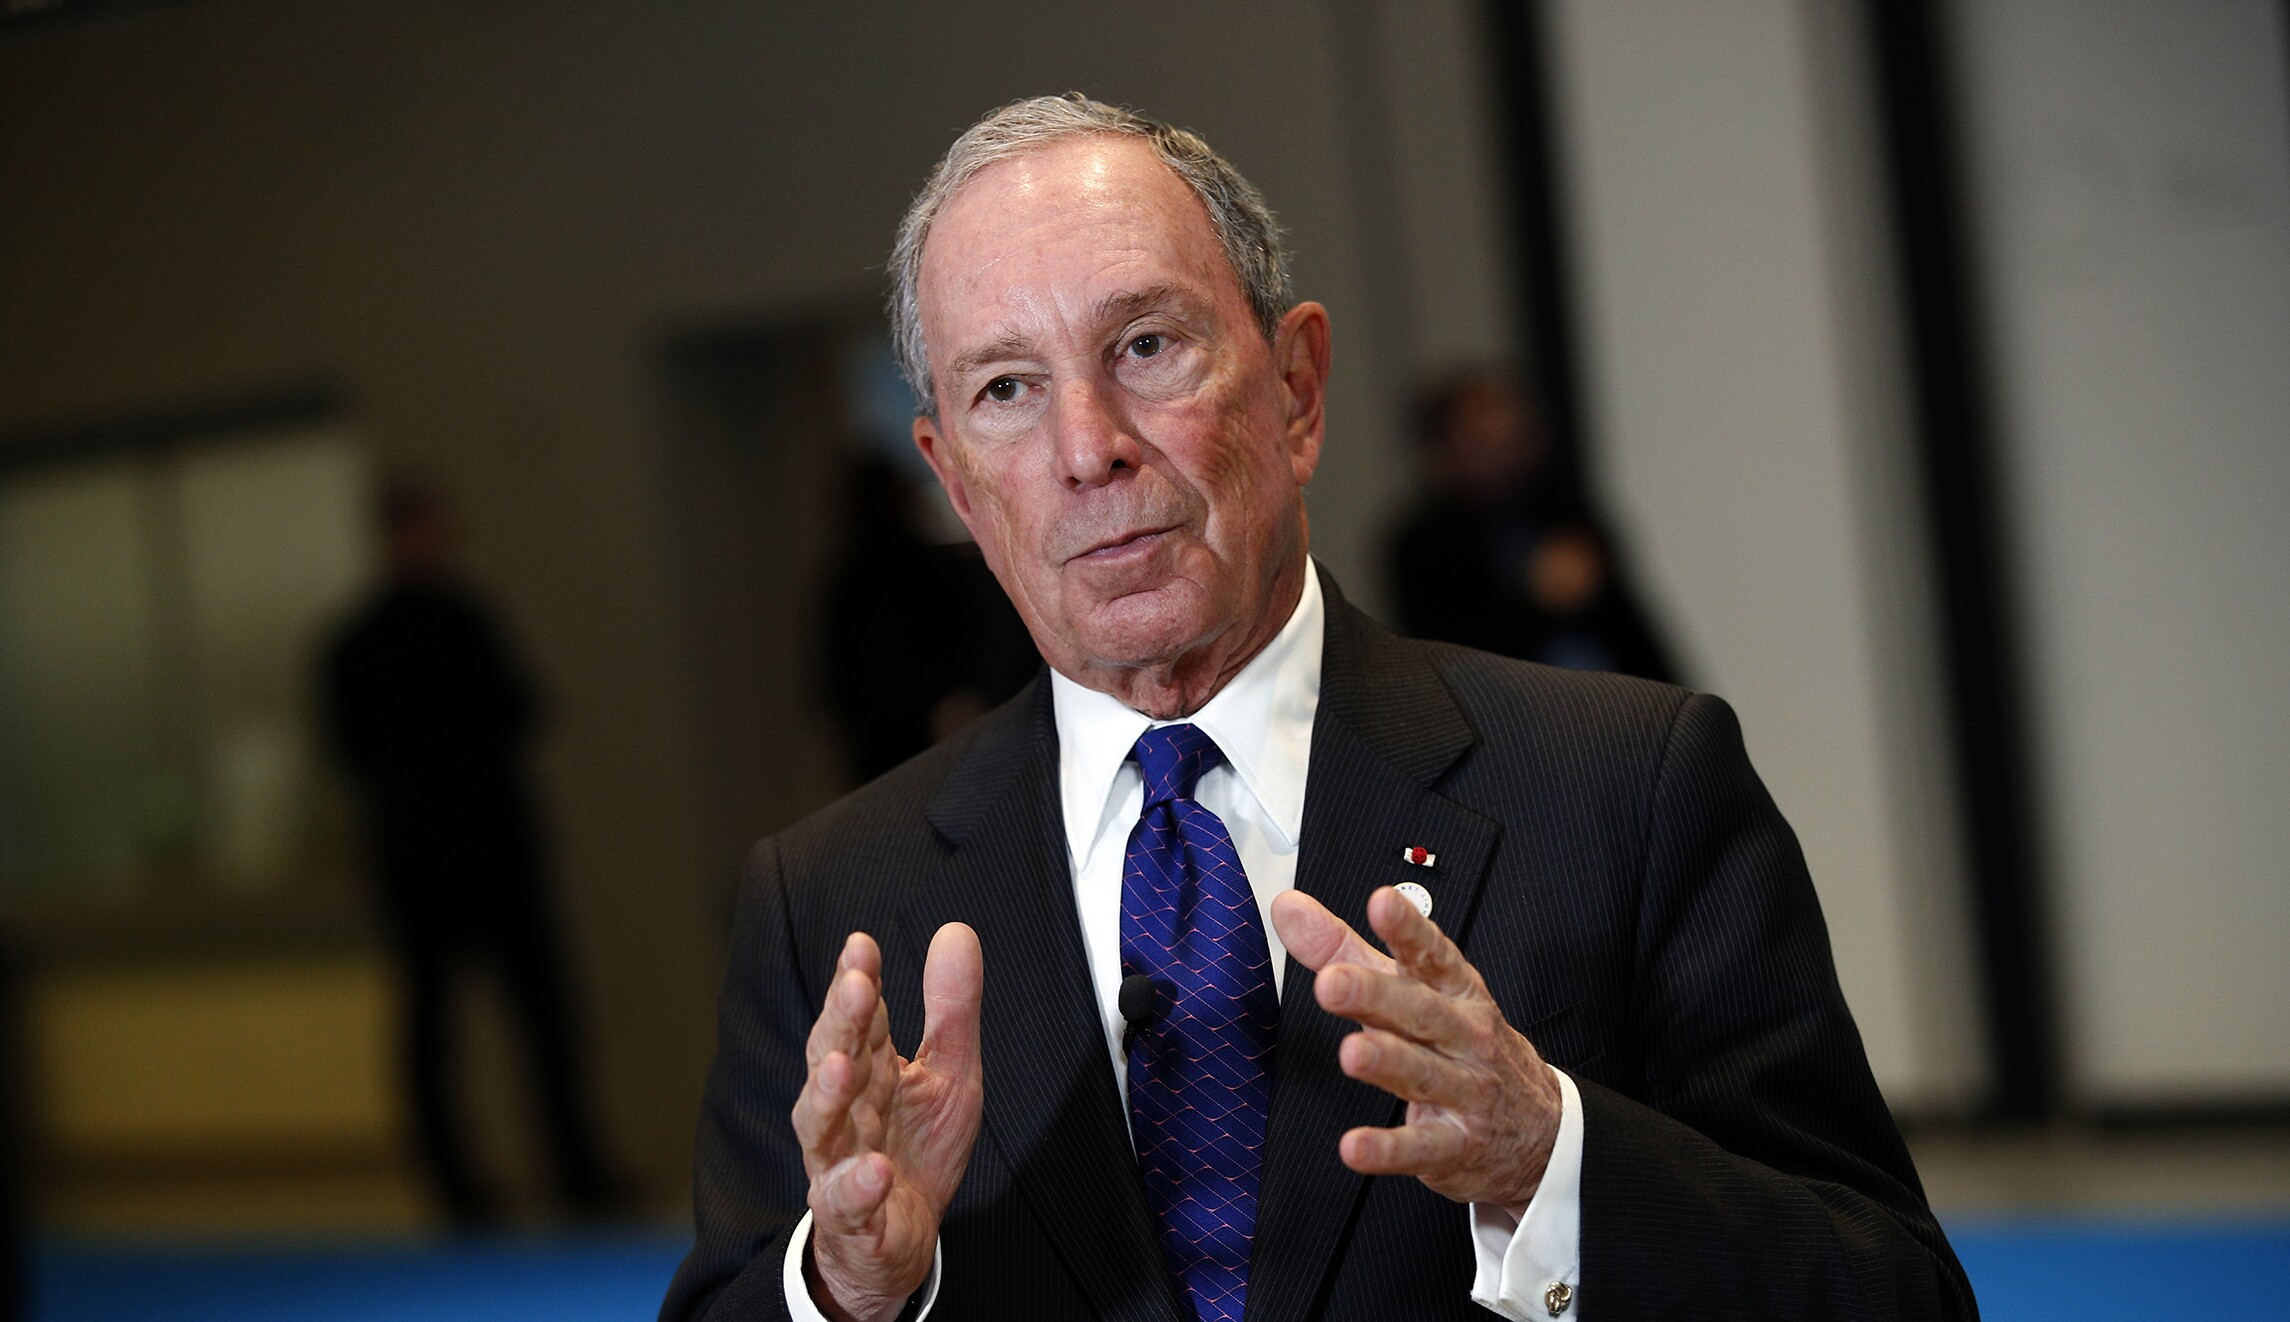 michael bloomberg - photo #5